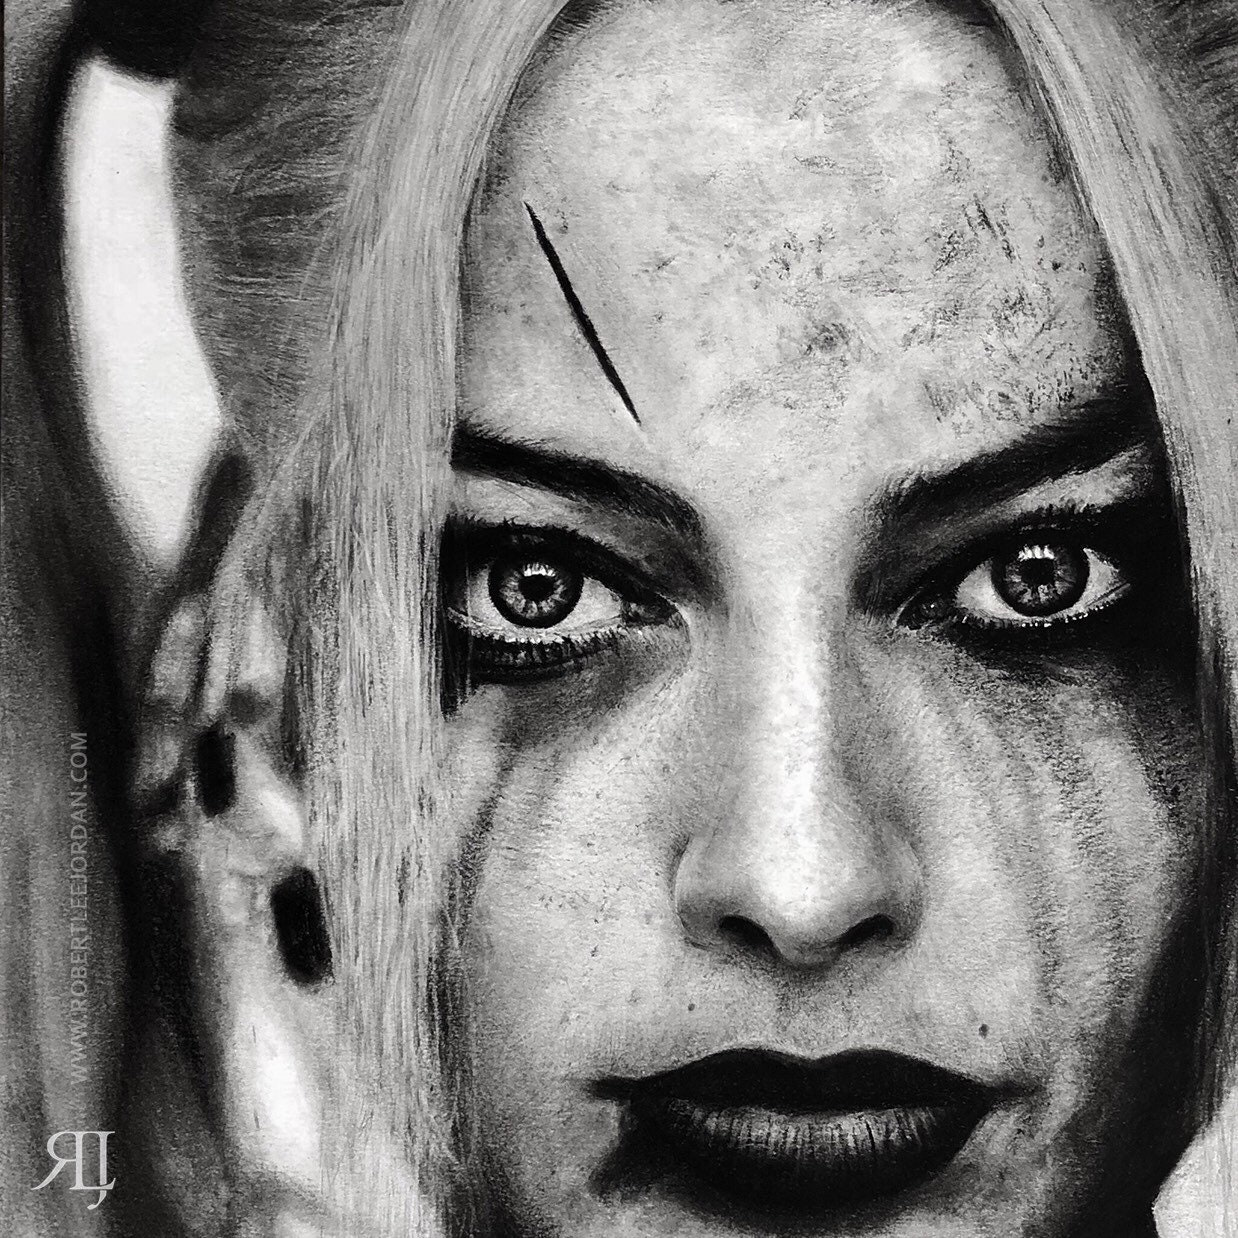 Harley quinn original pencil drawing margot robbie original pencil drawing din a4 the joker art gift box christmas gift